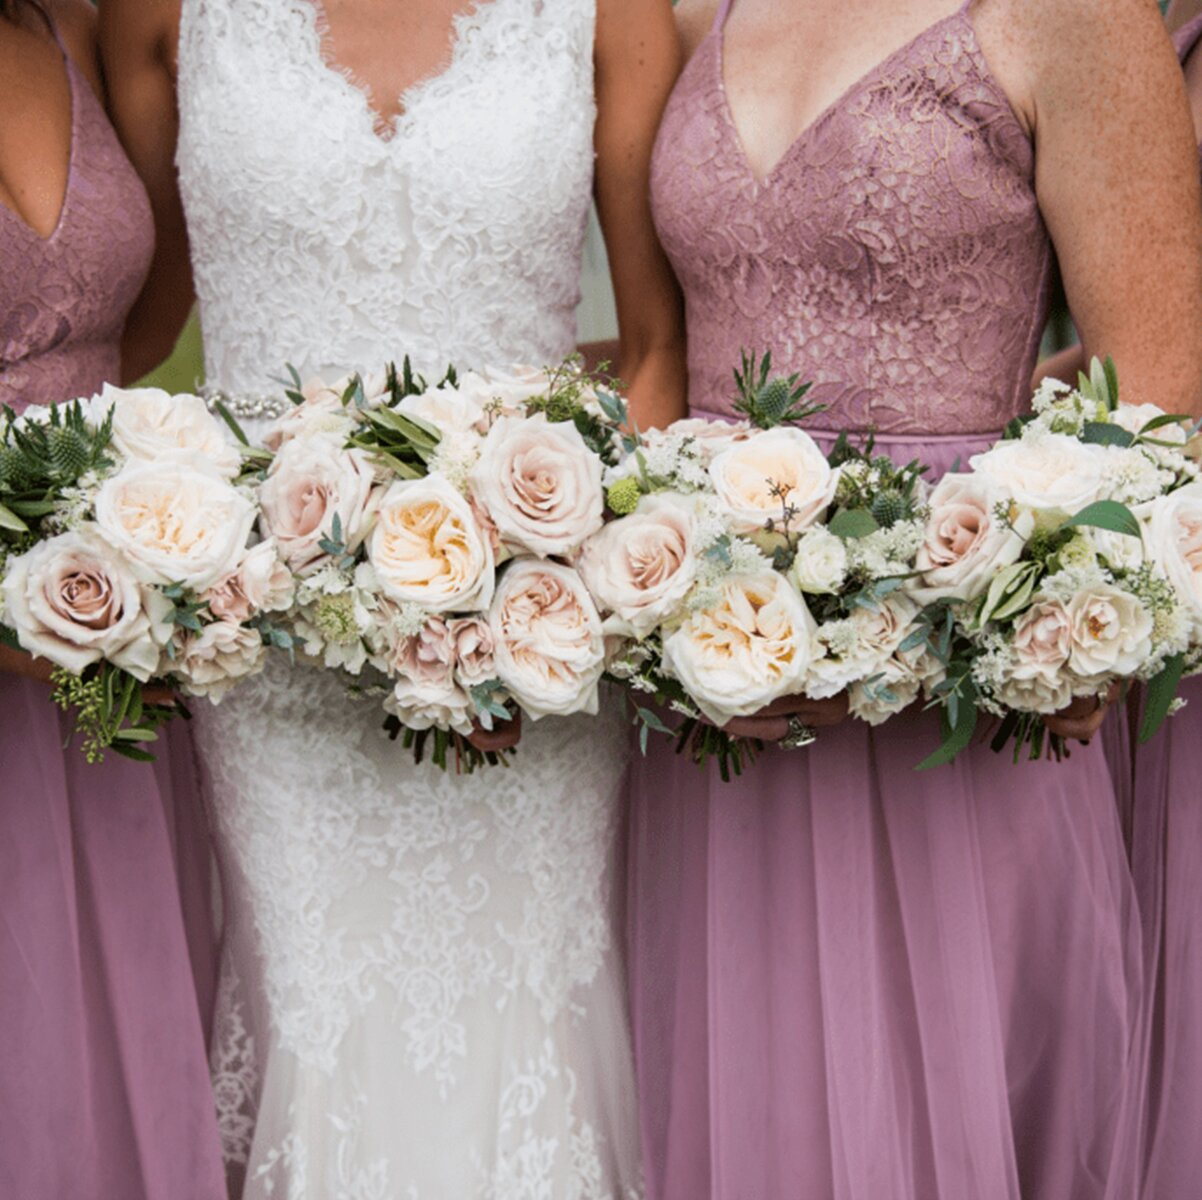 sydney-wedding-flower-prices-packages-affordable